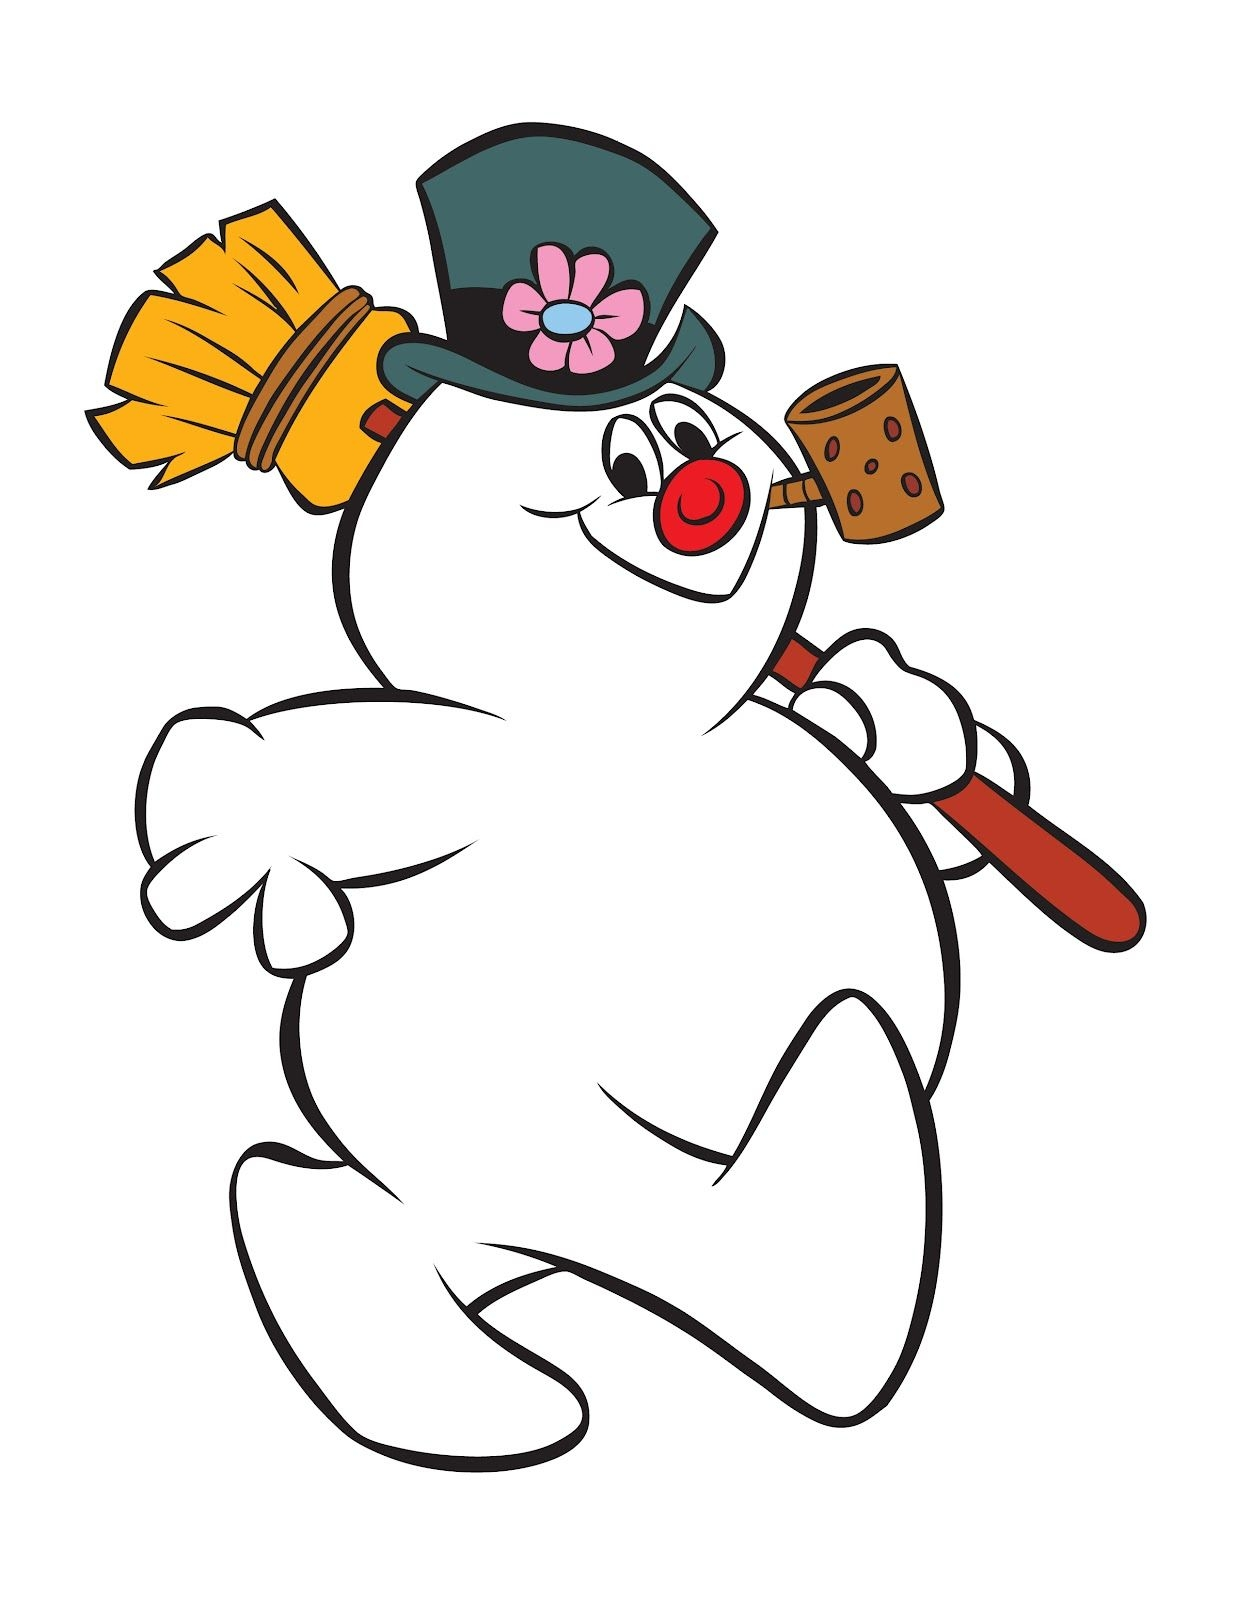 1236x1600 Frosty The Snowman Coloring Pages Ppinews.co